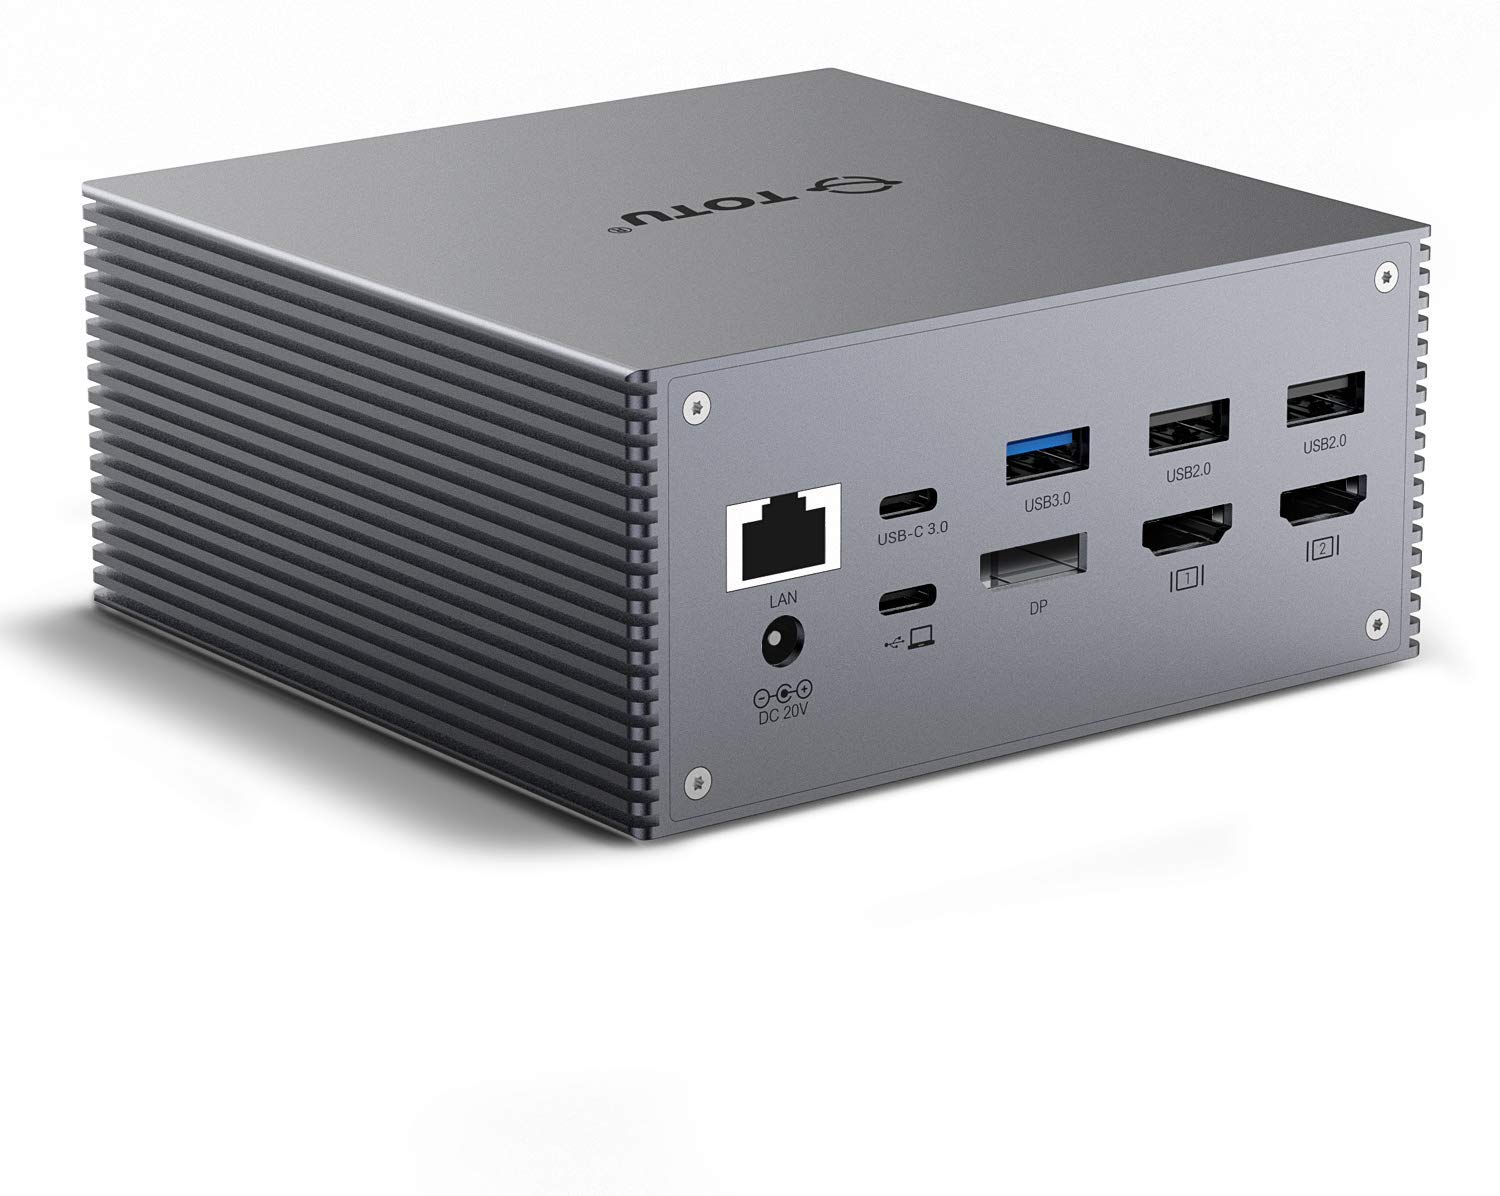 TOTU USB-C 4K Triple Display Docking Station